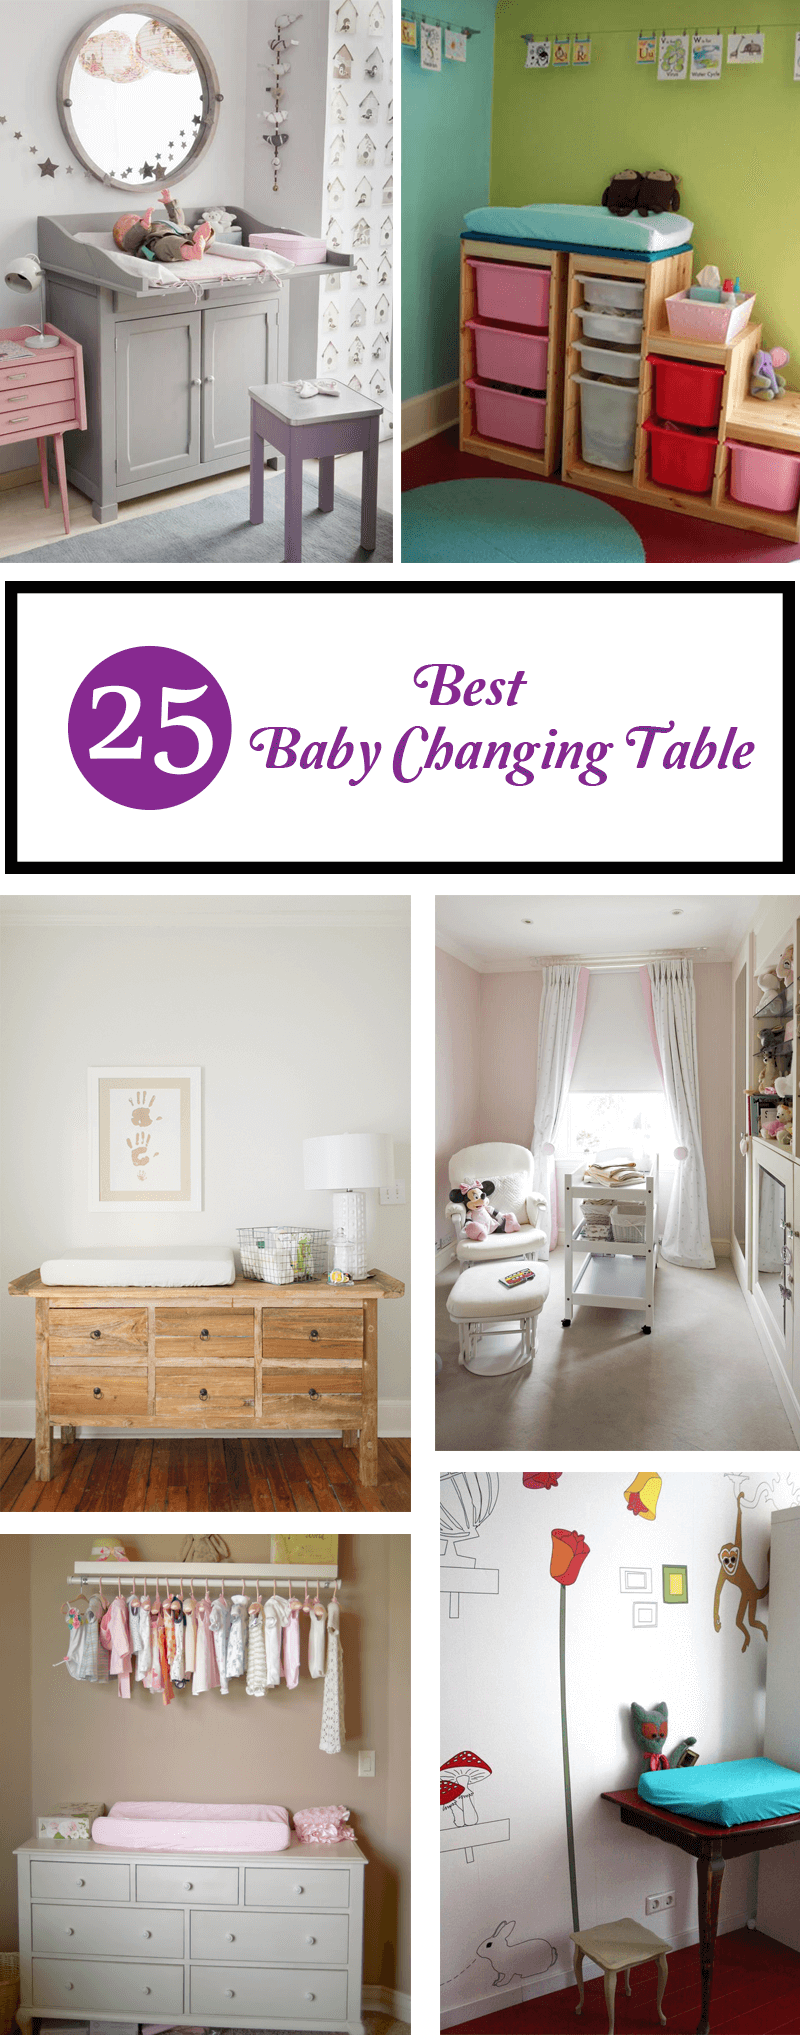 best baby changing table